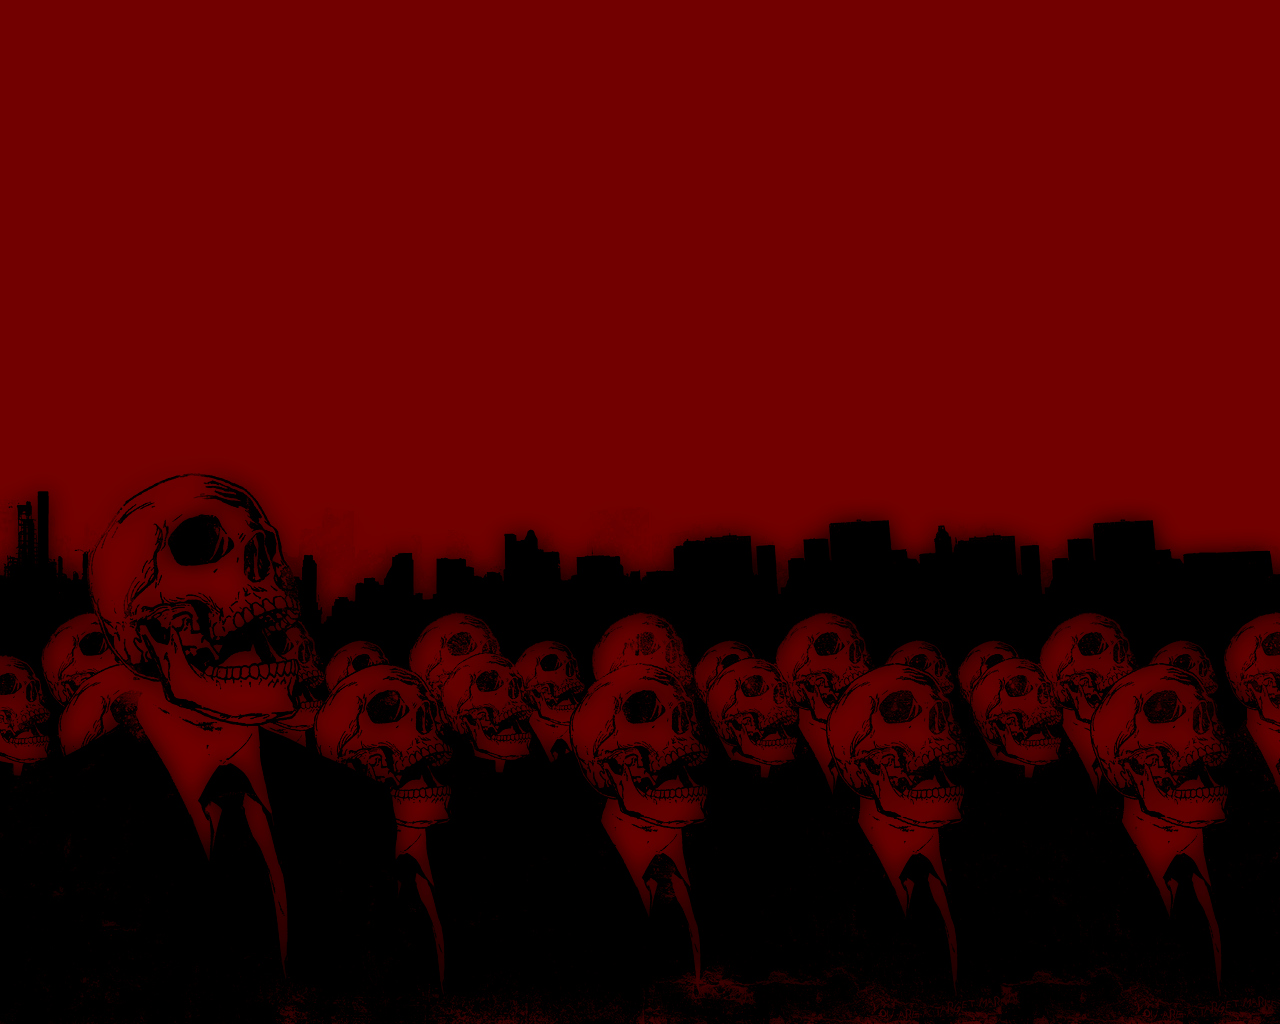 Red Skull Background Red skull army wallpaper 1280x1024